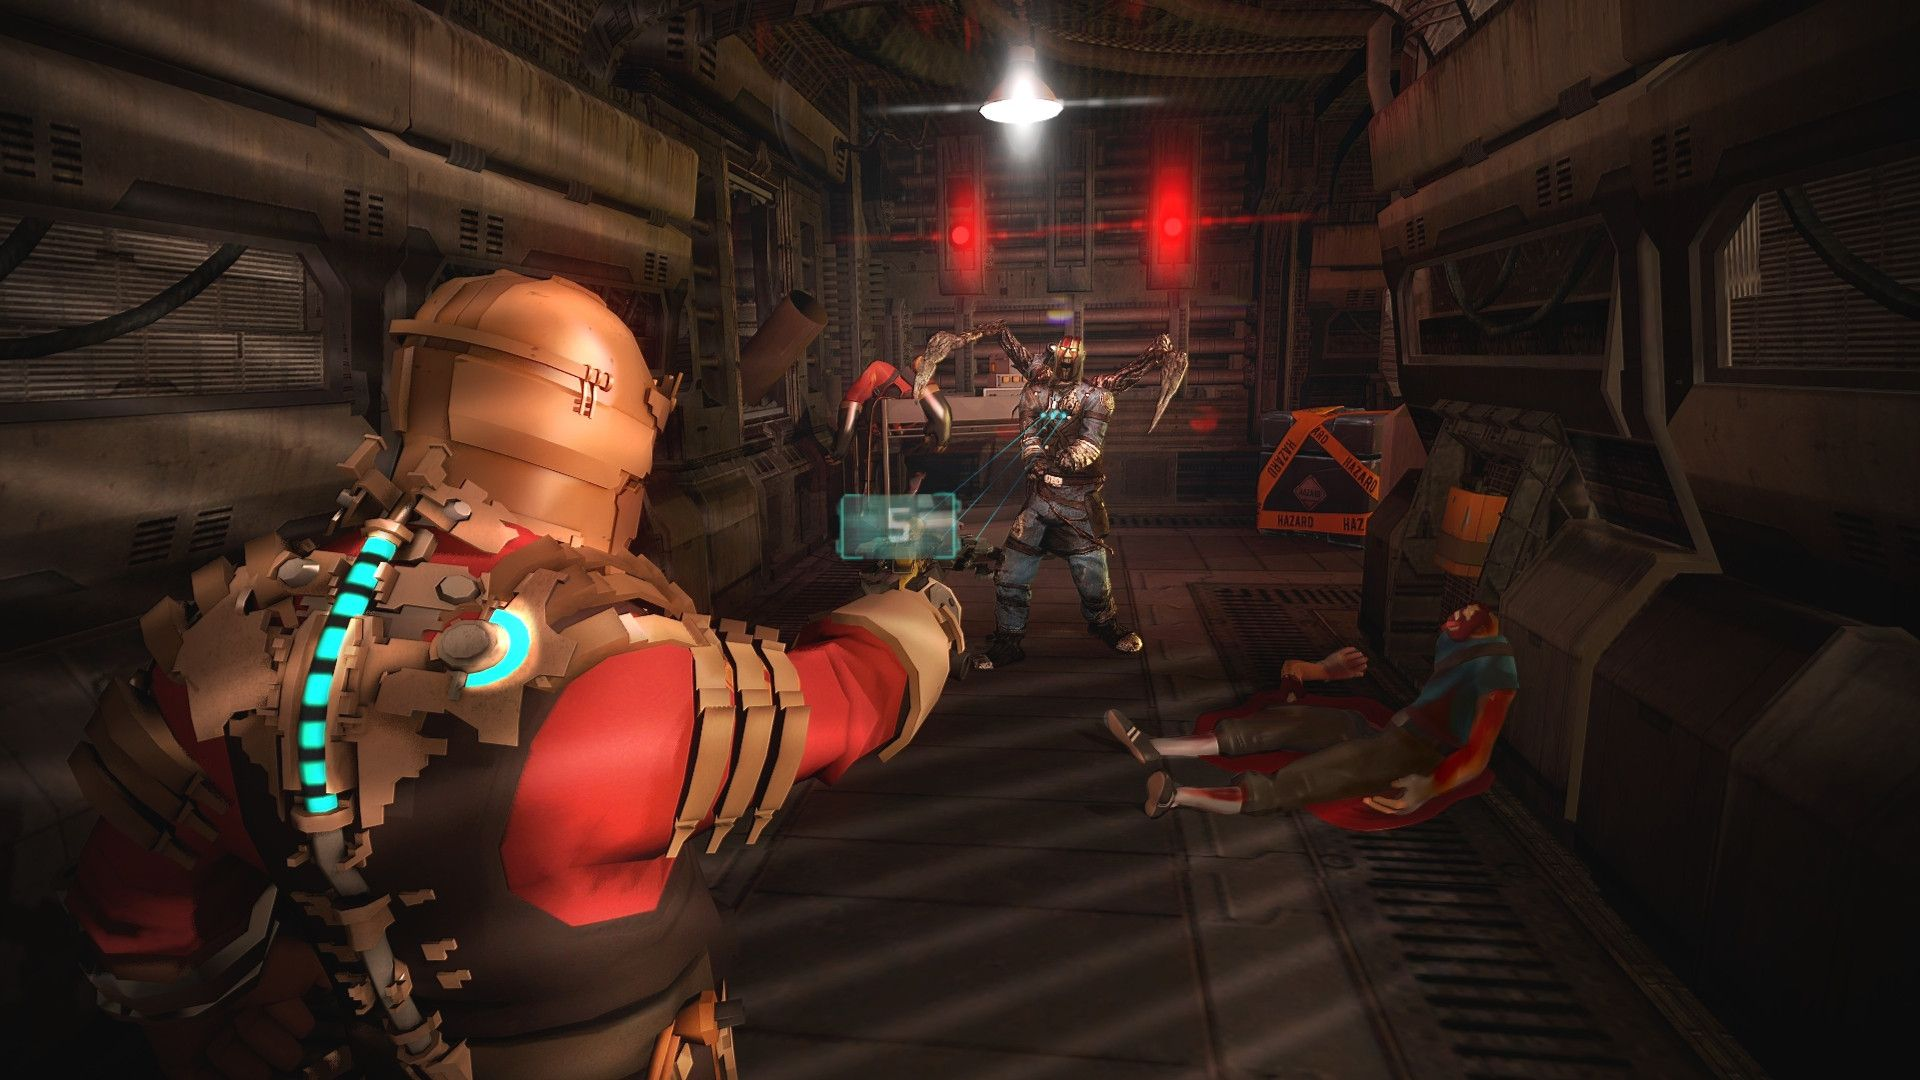 Dead Fortress (Team Fortress 2 x Dead Space)